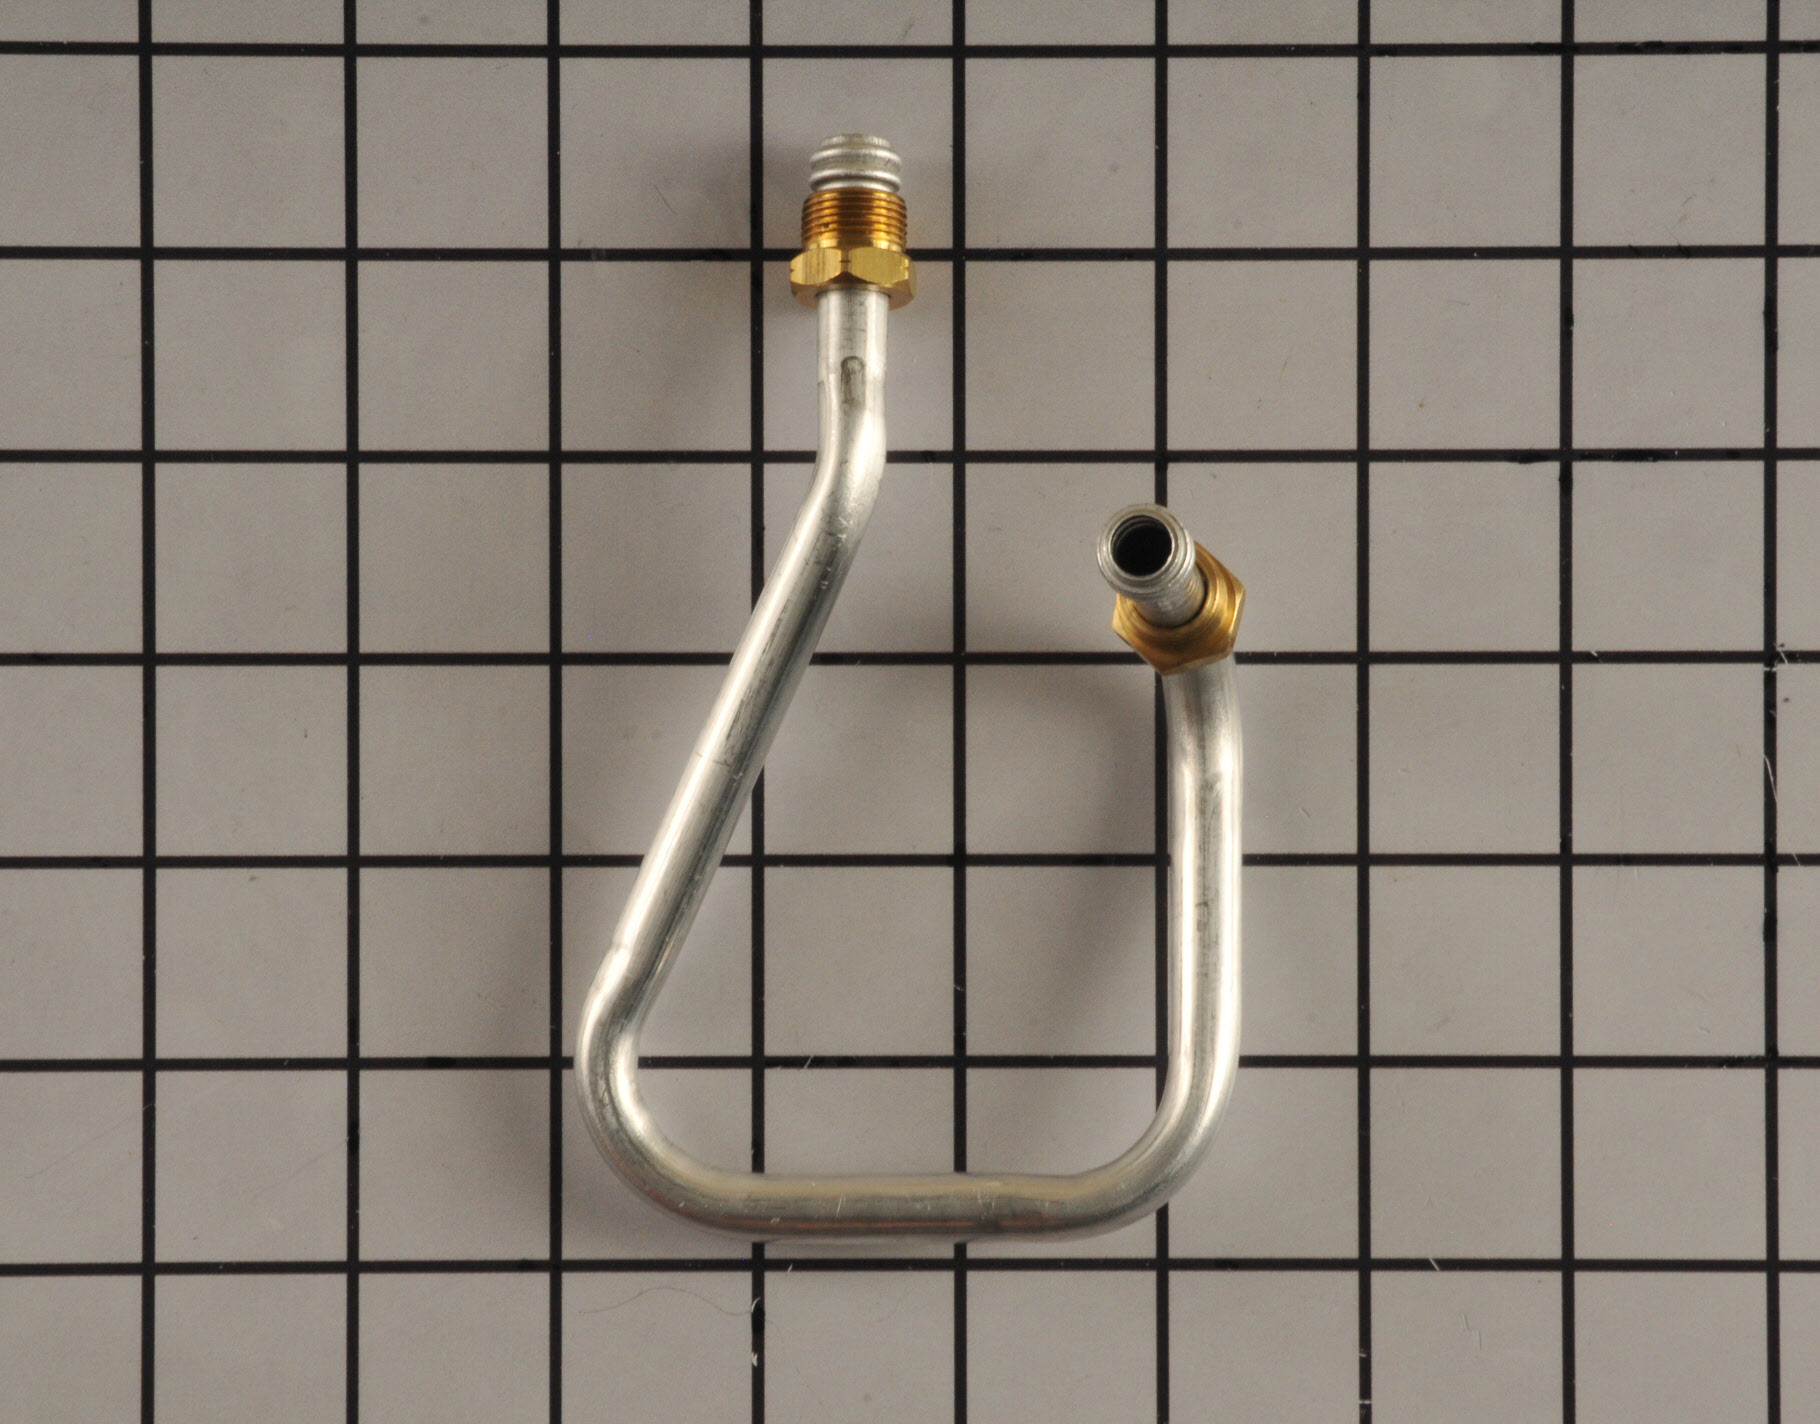 Ikea Range/Stove/Oven Part # W10319002 - Gas Tube or Connector